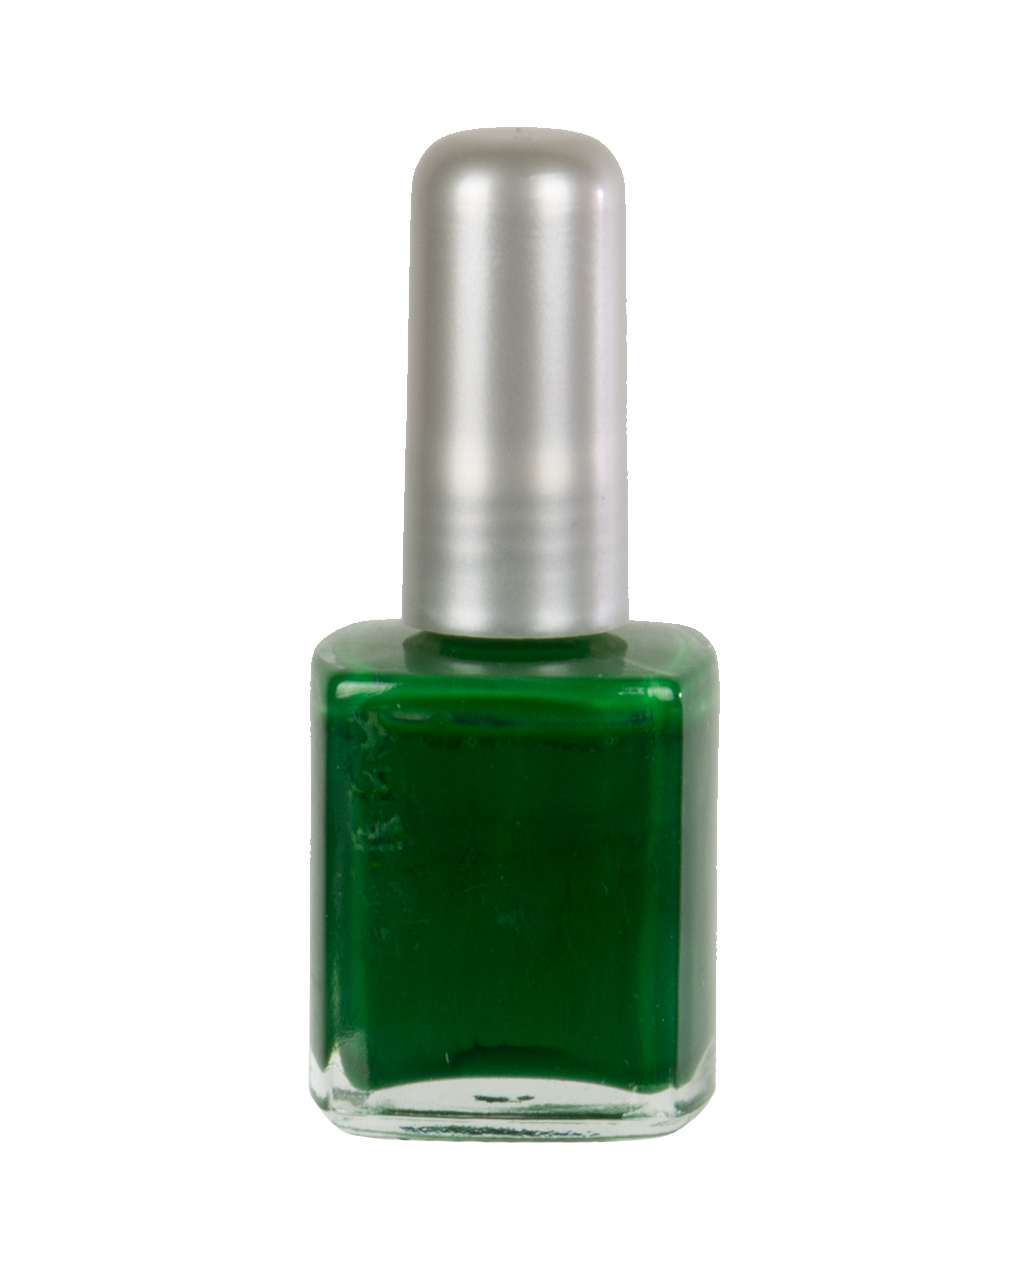 Witches Nail Polish Green for Halloween